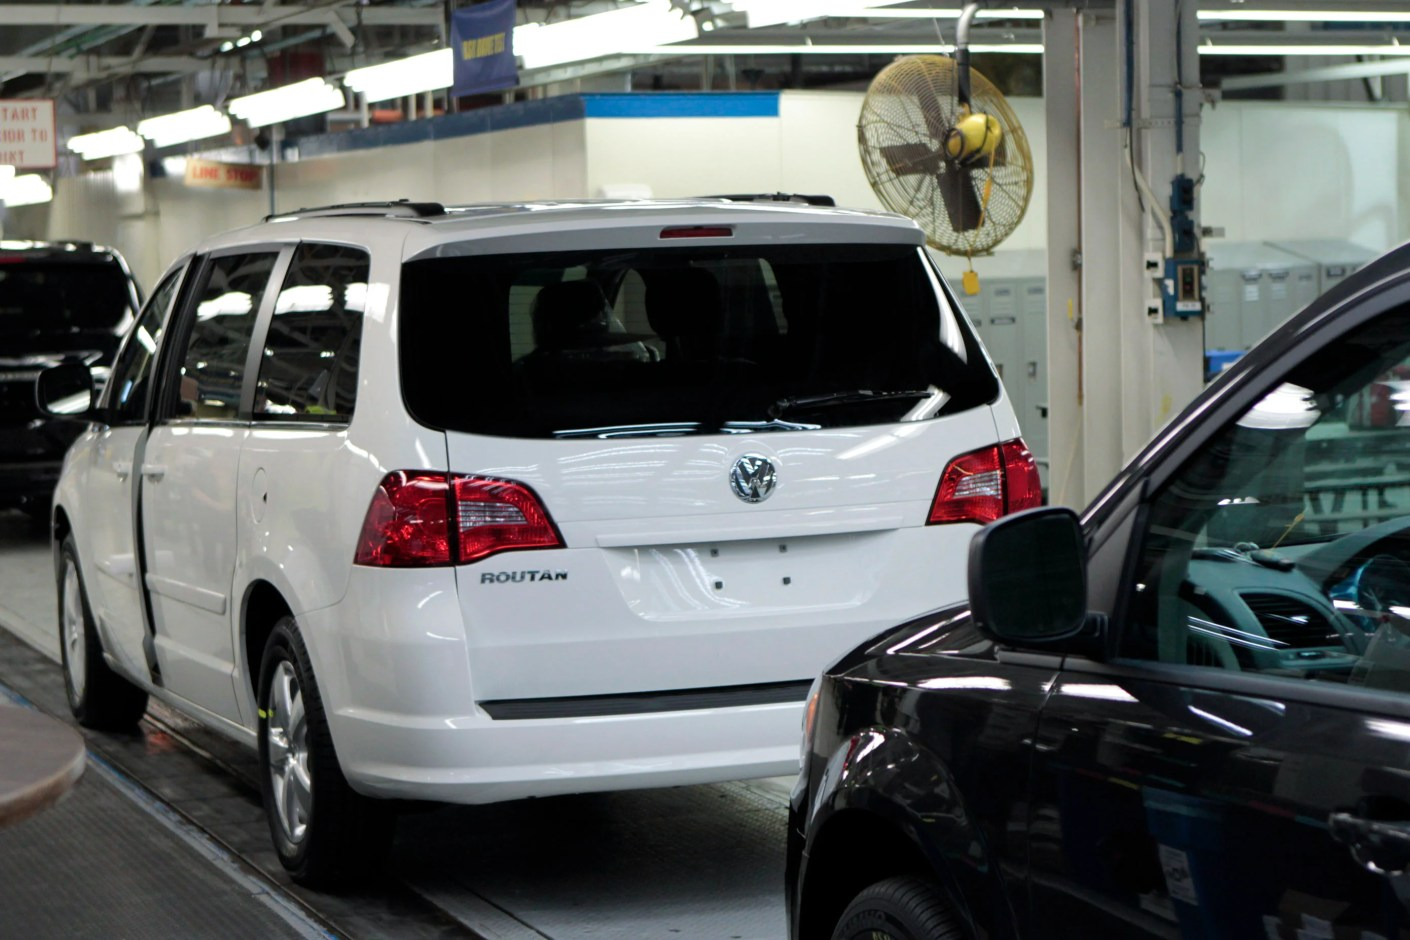 A US-model VW minivan on the assembly line (Image by Bloomberg / Contributor)